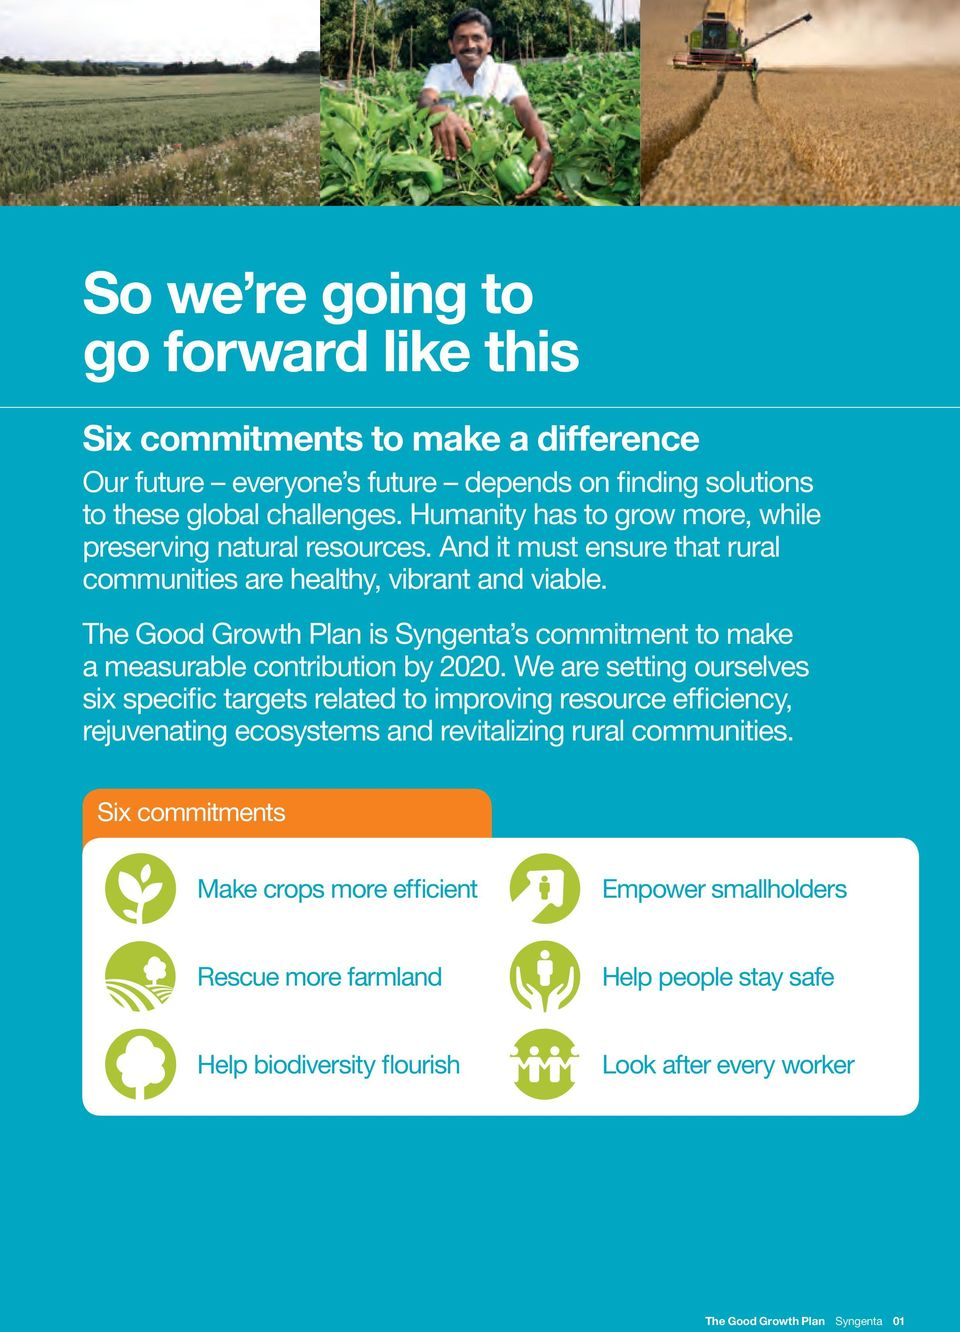 The Good Growth Plan is Syngenta s commitment to make a measurable contribution by 2020.